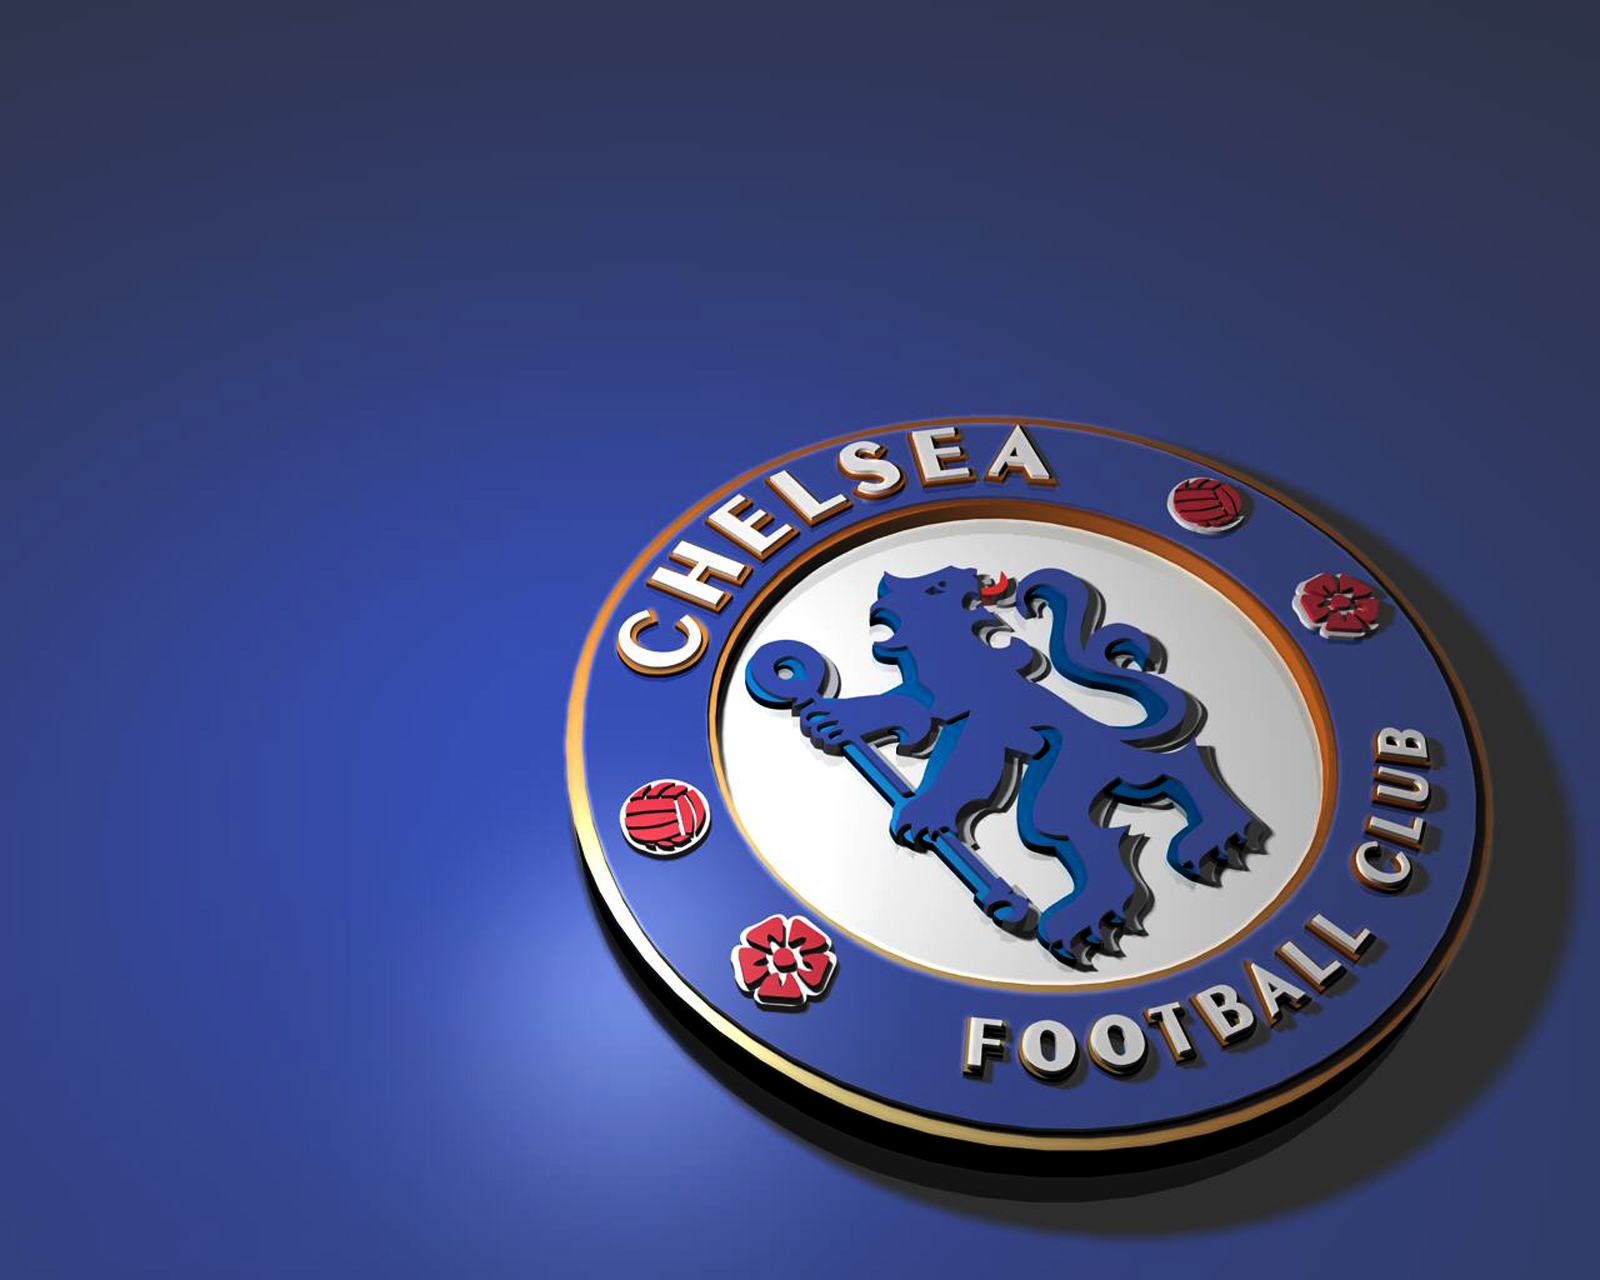 Chelsea Football Club Logo HD Wallpapers HD Wallpapers 1600x1280